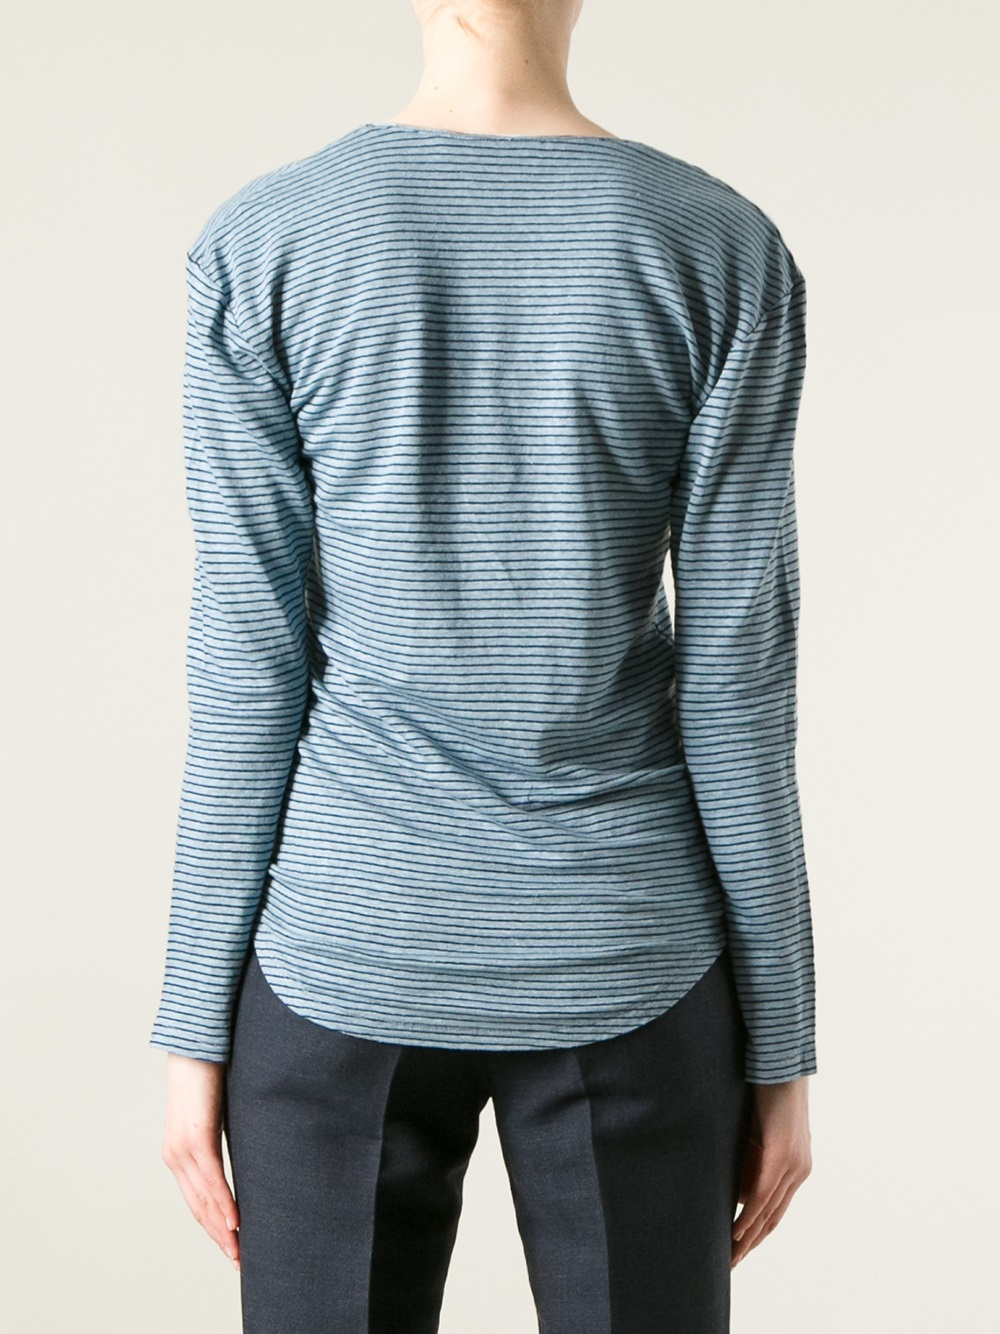 Toile isabel marant striped long sleeve t shirt in blue Striped long sleeve t shirt